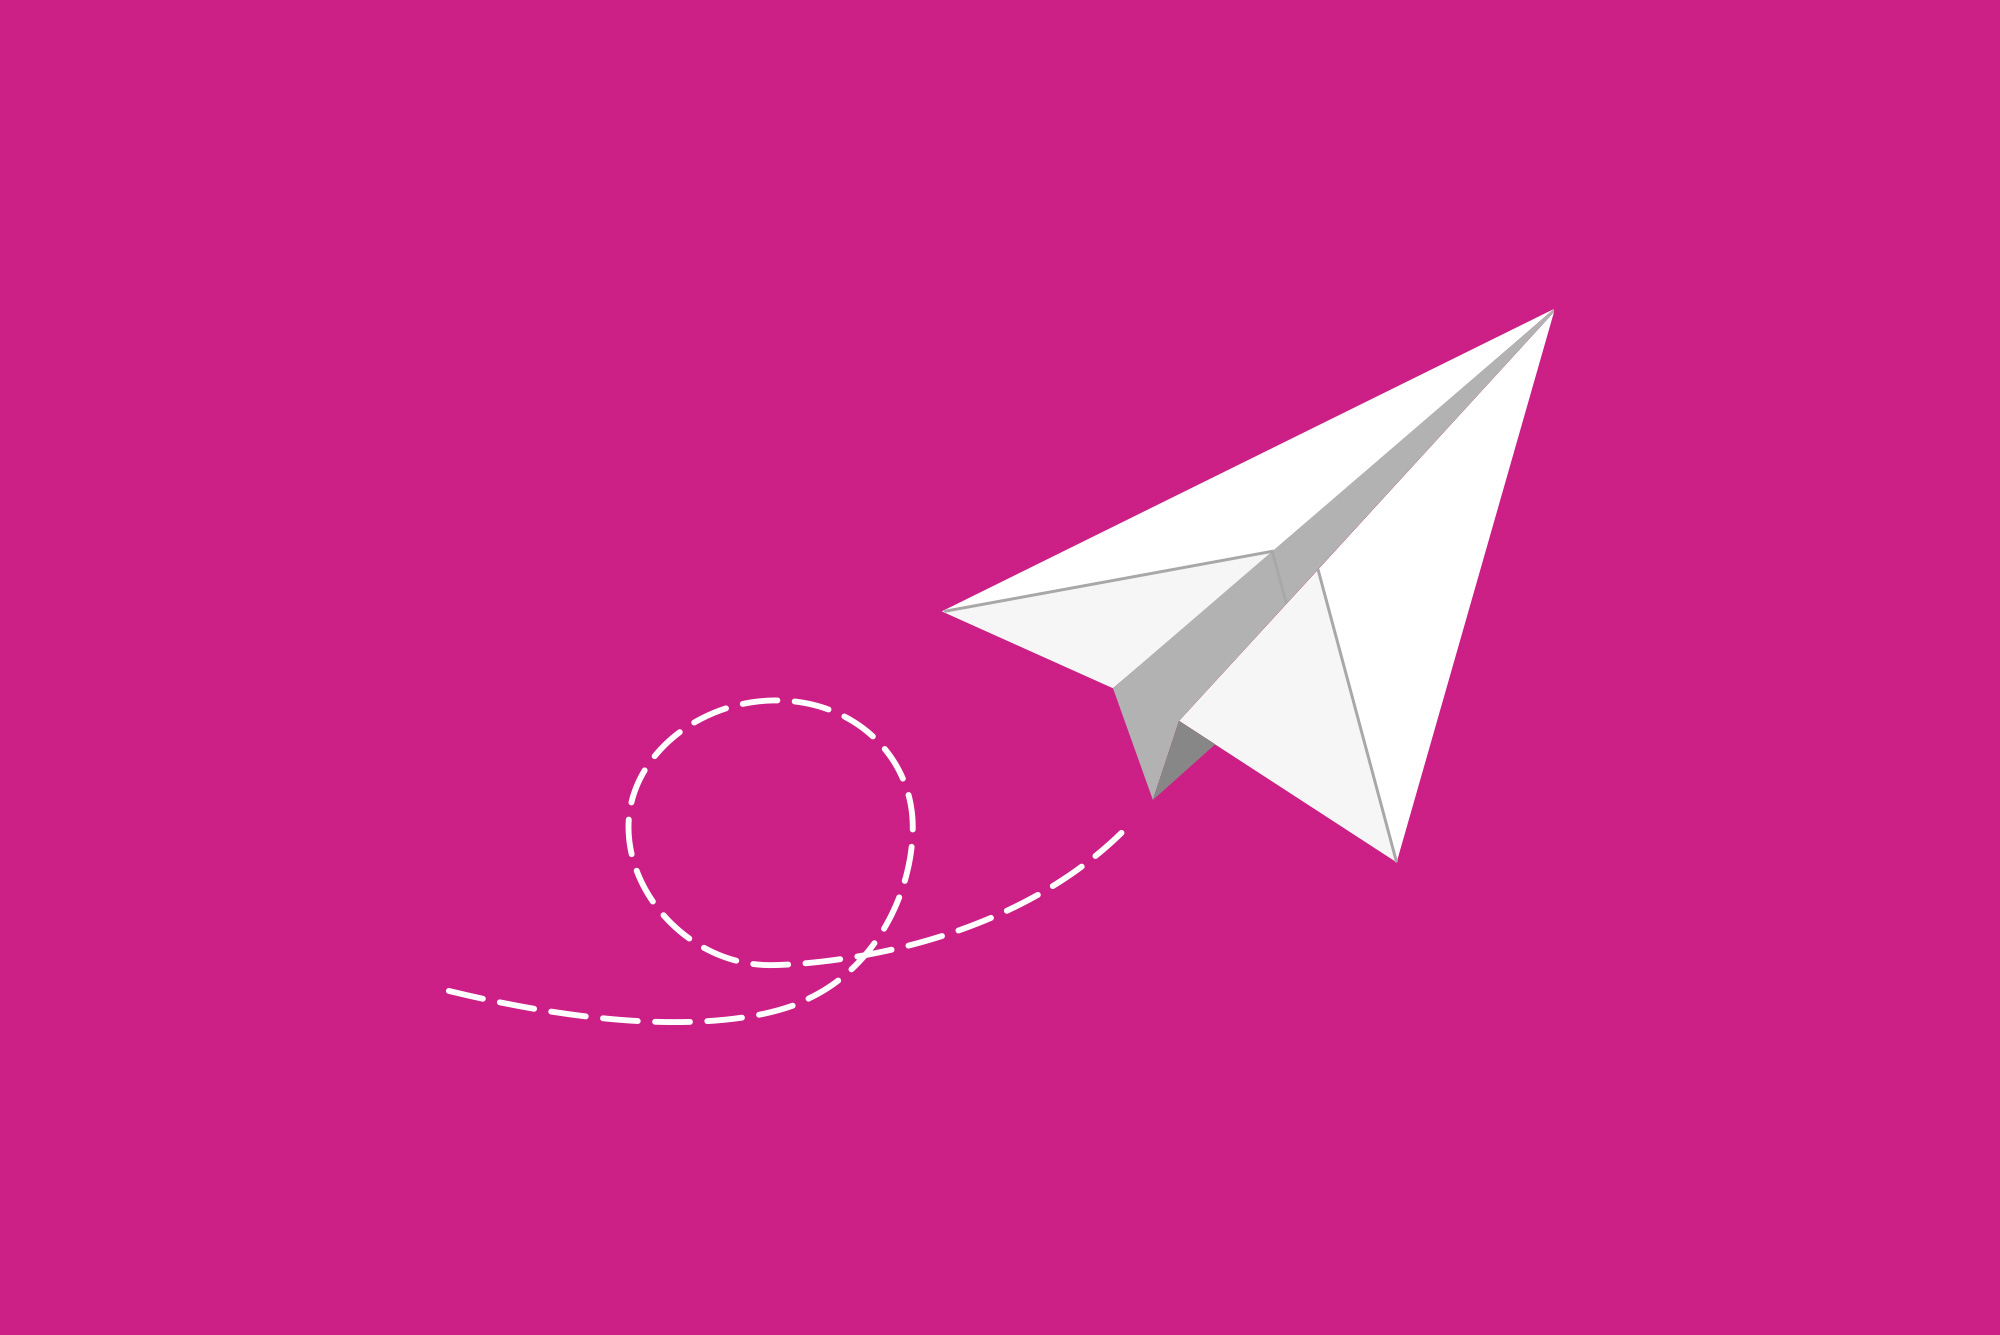 Paper airplane on pink background - Email marketing